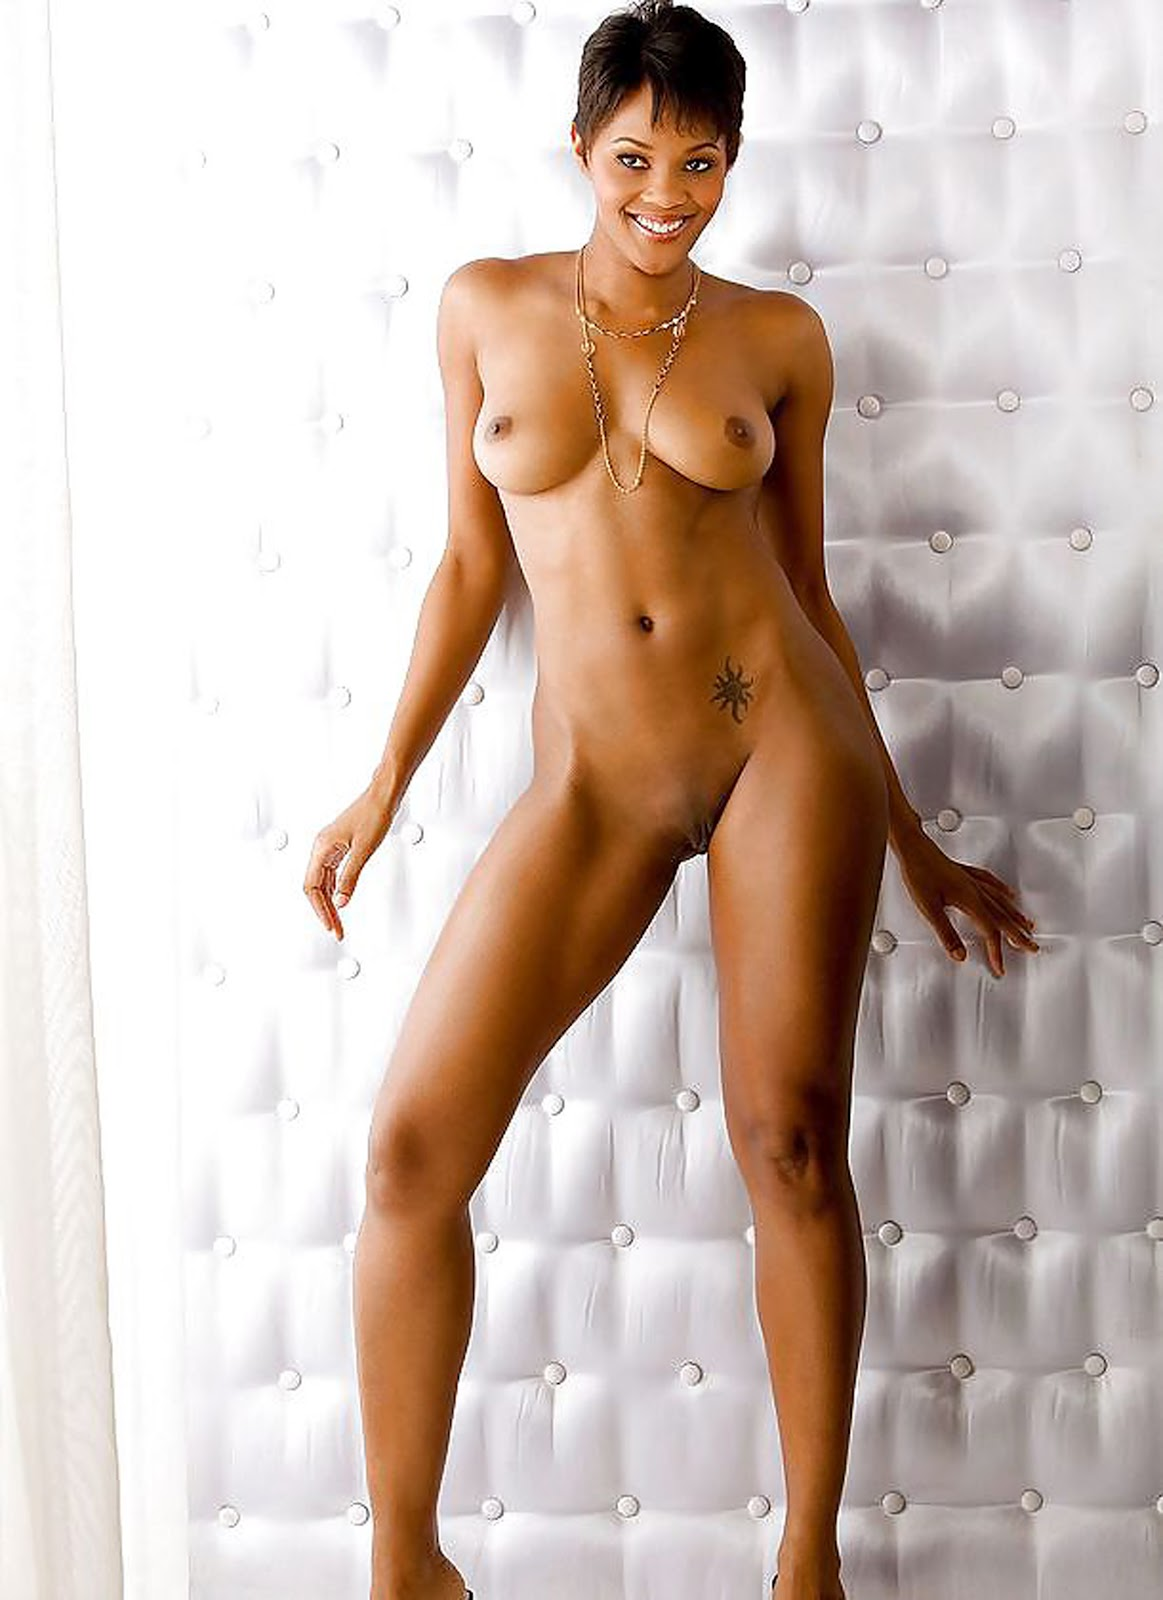 ebony nudist pics